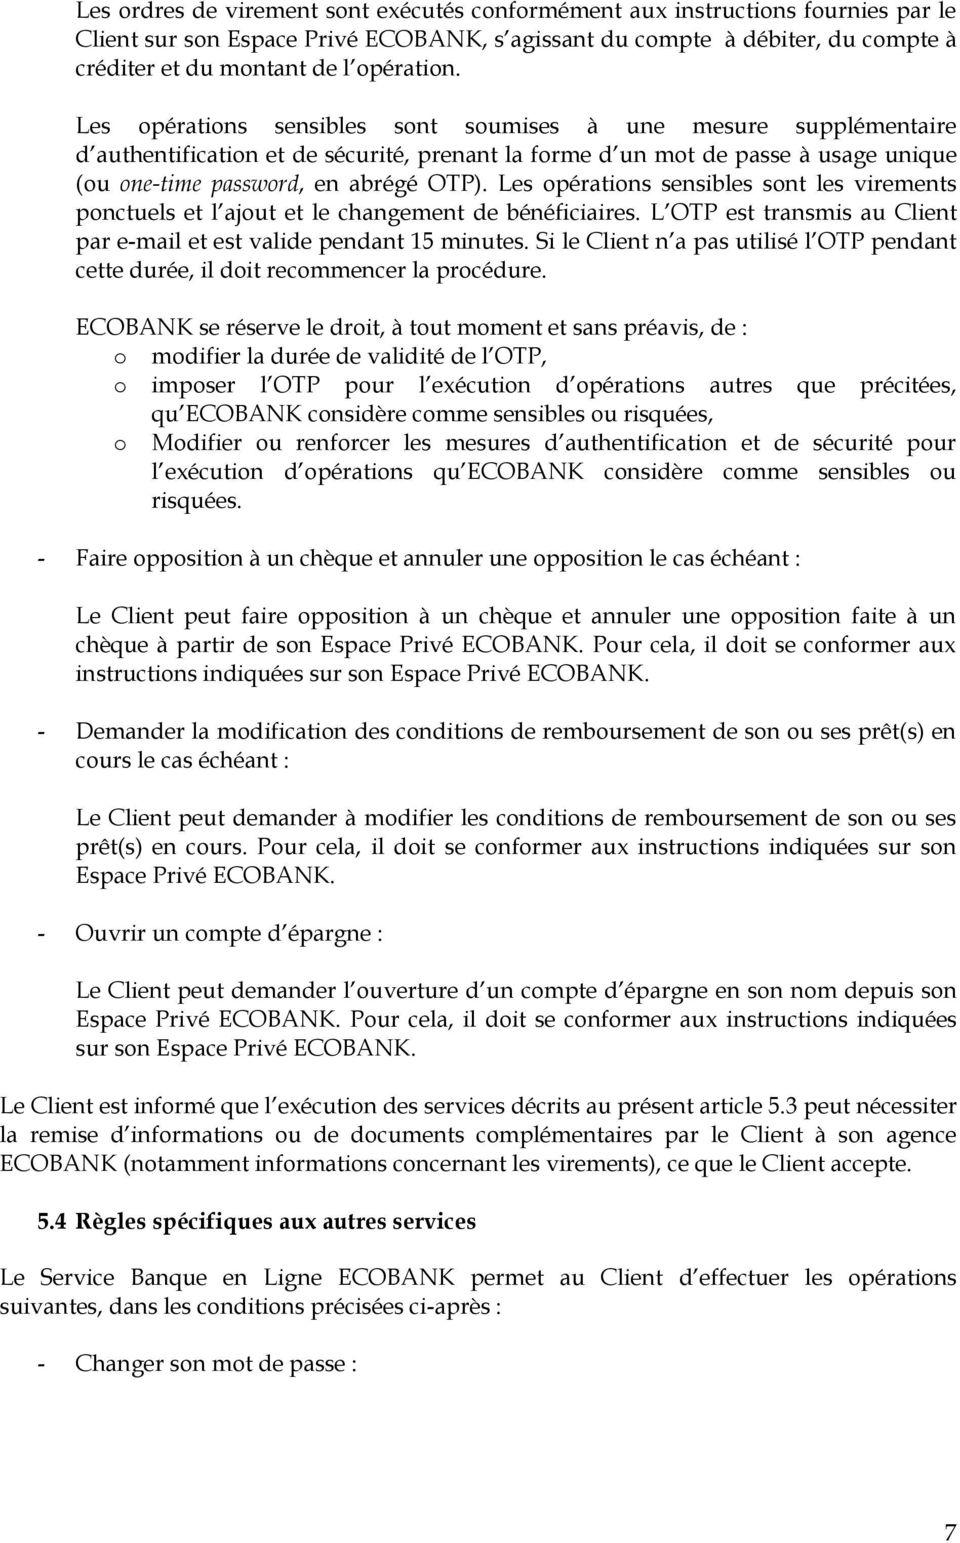 Les opérations sensibles sont soumises à une mesure supplémentaire d authentification et de sécurité, prenant la forme d un mot de passe à usage unique (ou one-time password, en abrégé OTP).